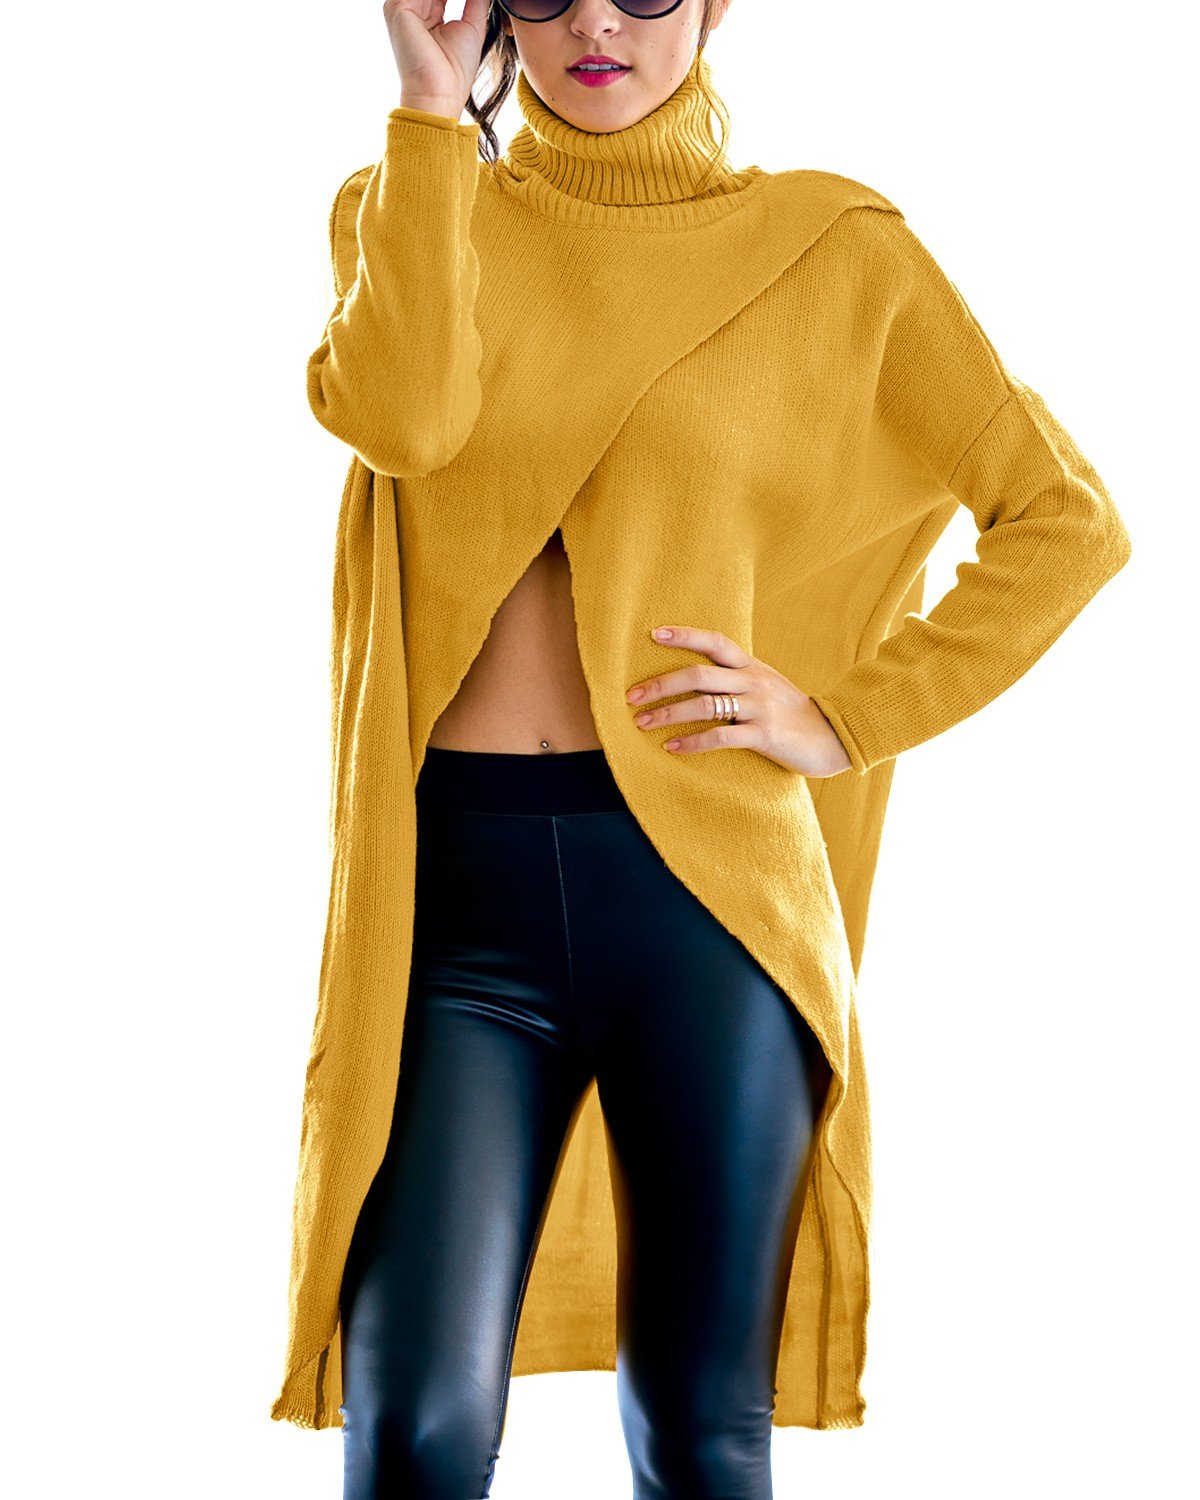 GIKING Women's Casual Plus Size Long Sleeve Chic Loose Knit Turtleneck Pullover Sweater Yellow XL